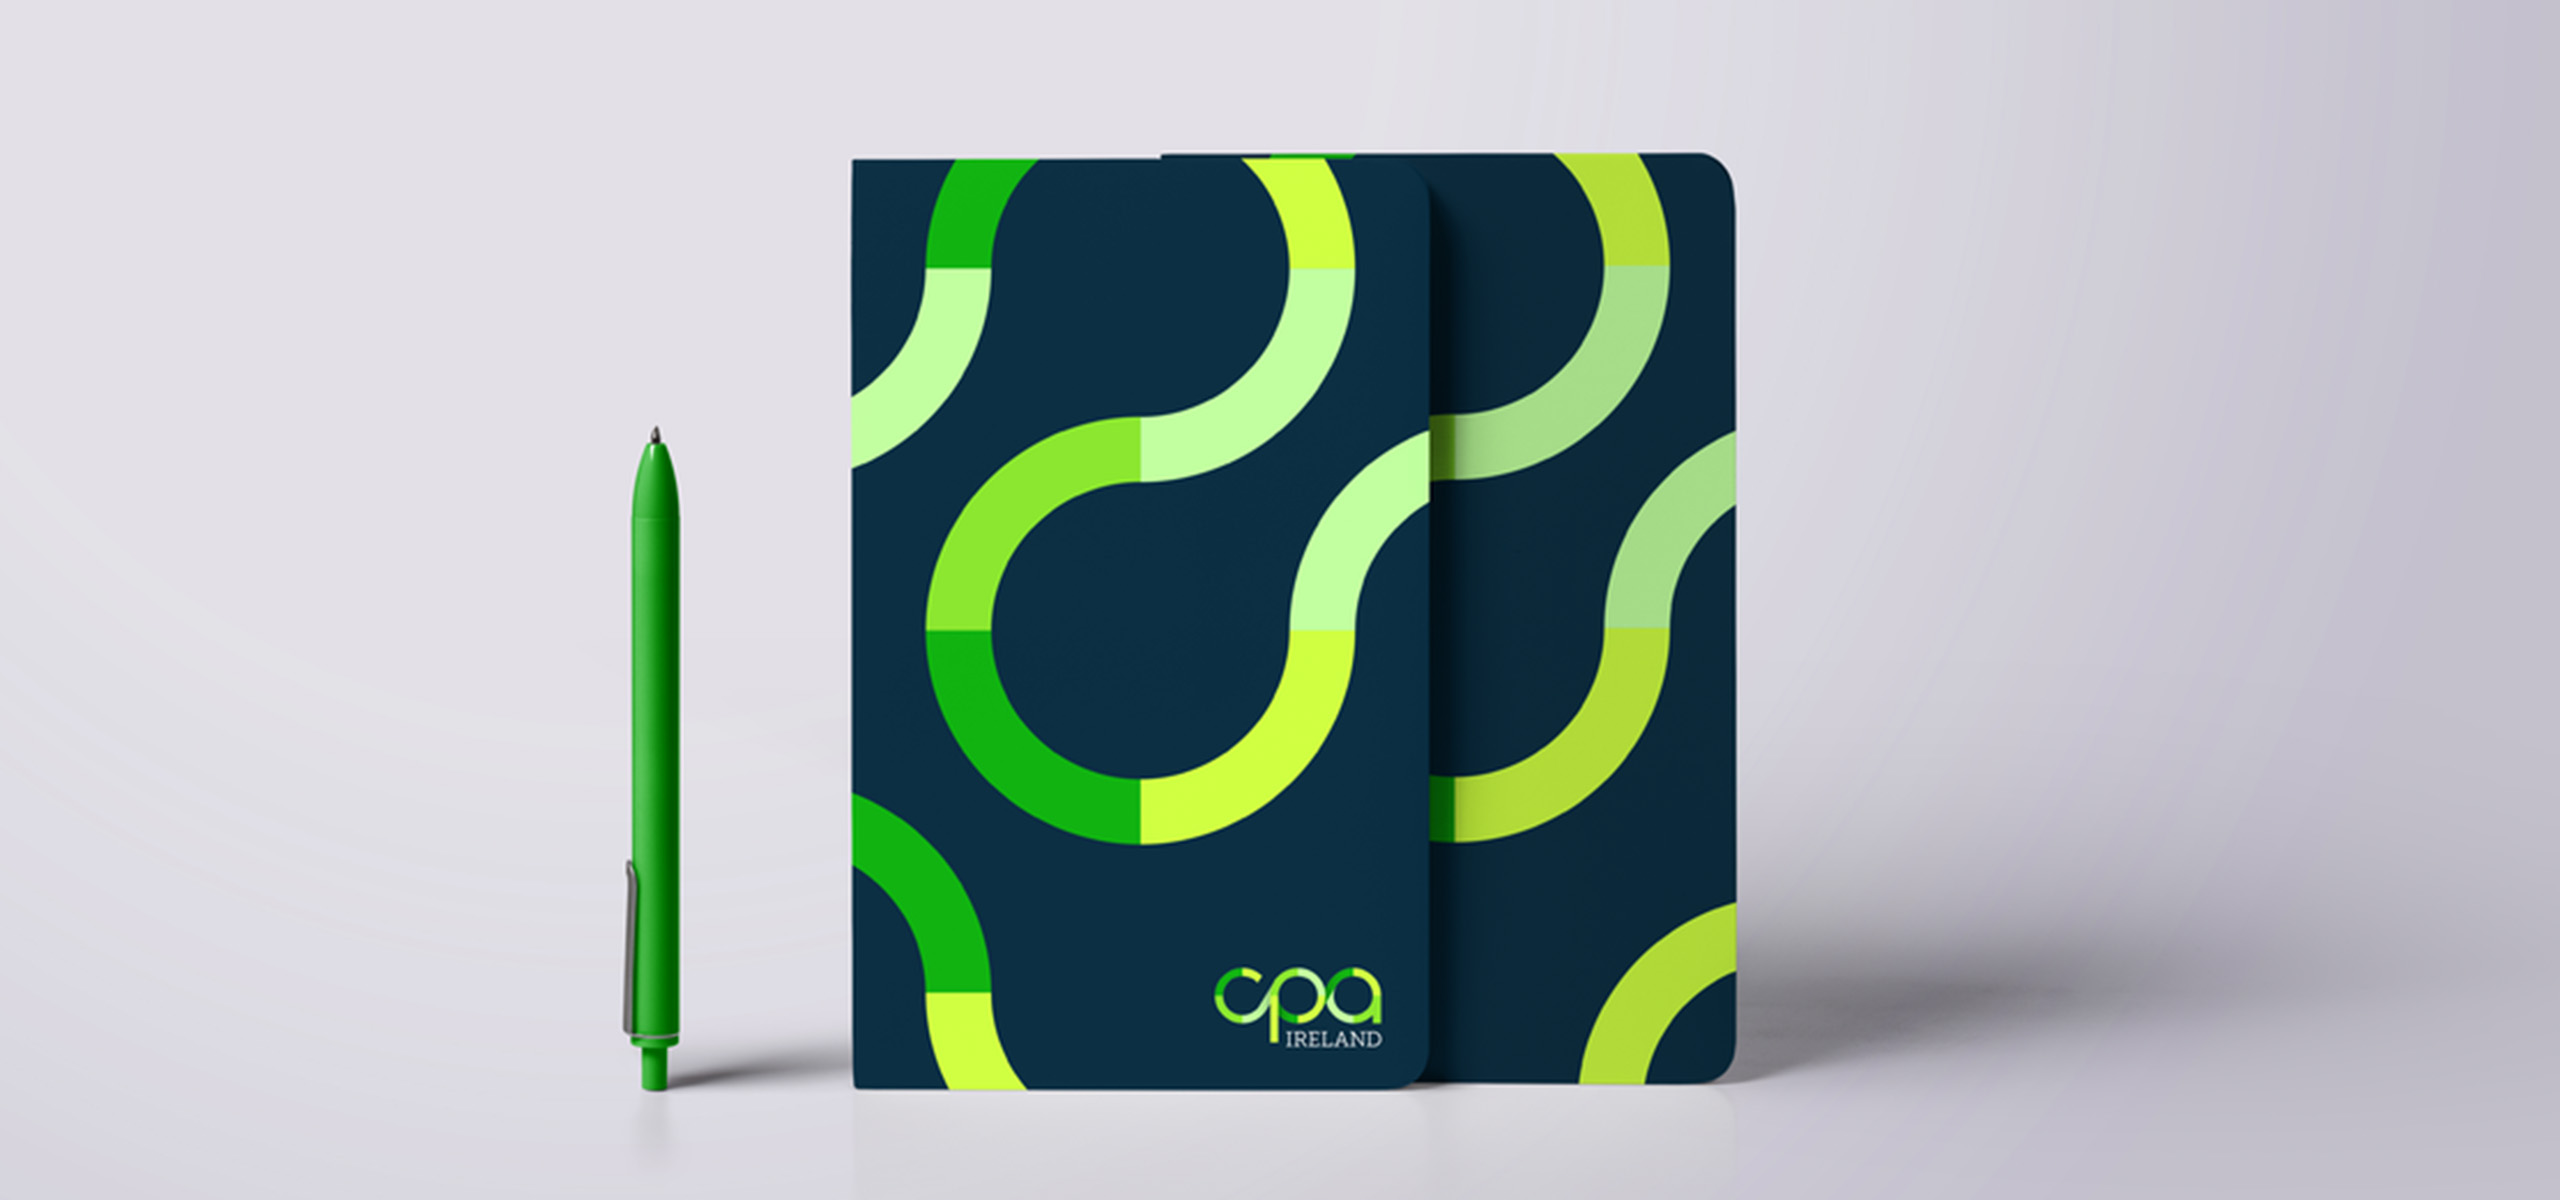 Notebook design for Irish accountancy brand CPA, designed by White Bear Studio